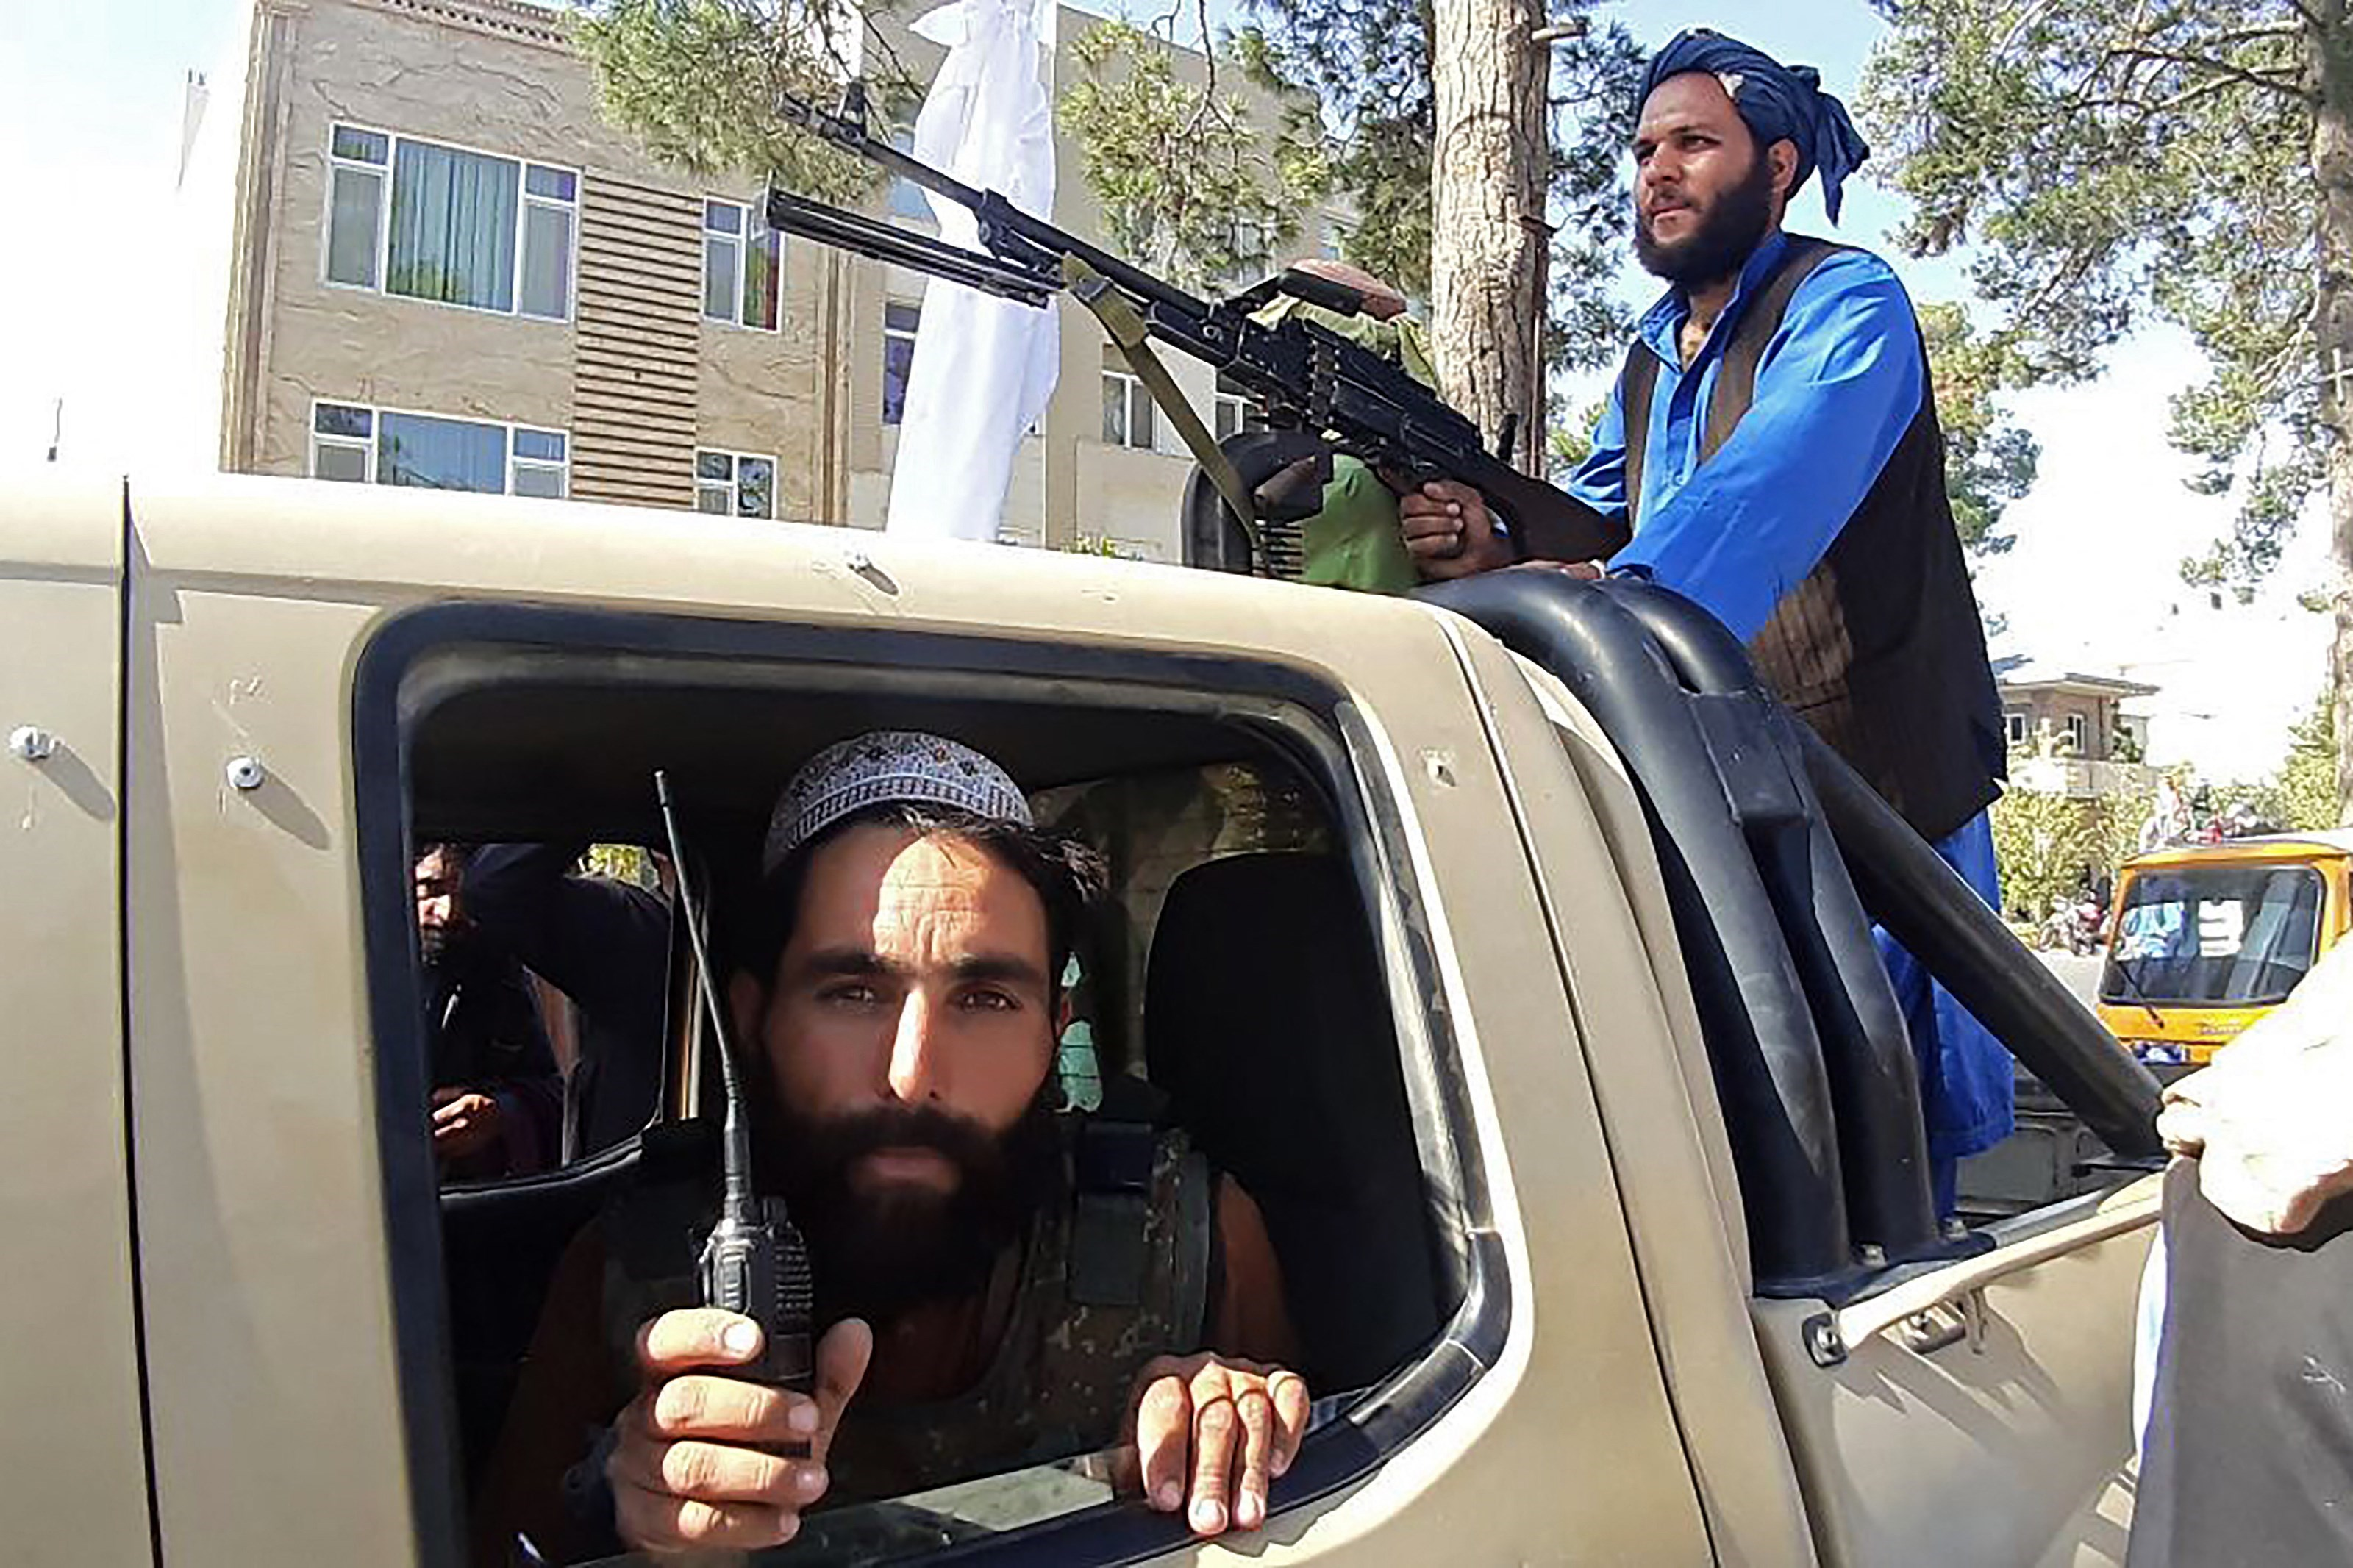 Taliban fighters in a vehicle along the roadside in Herat